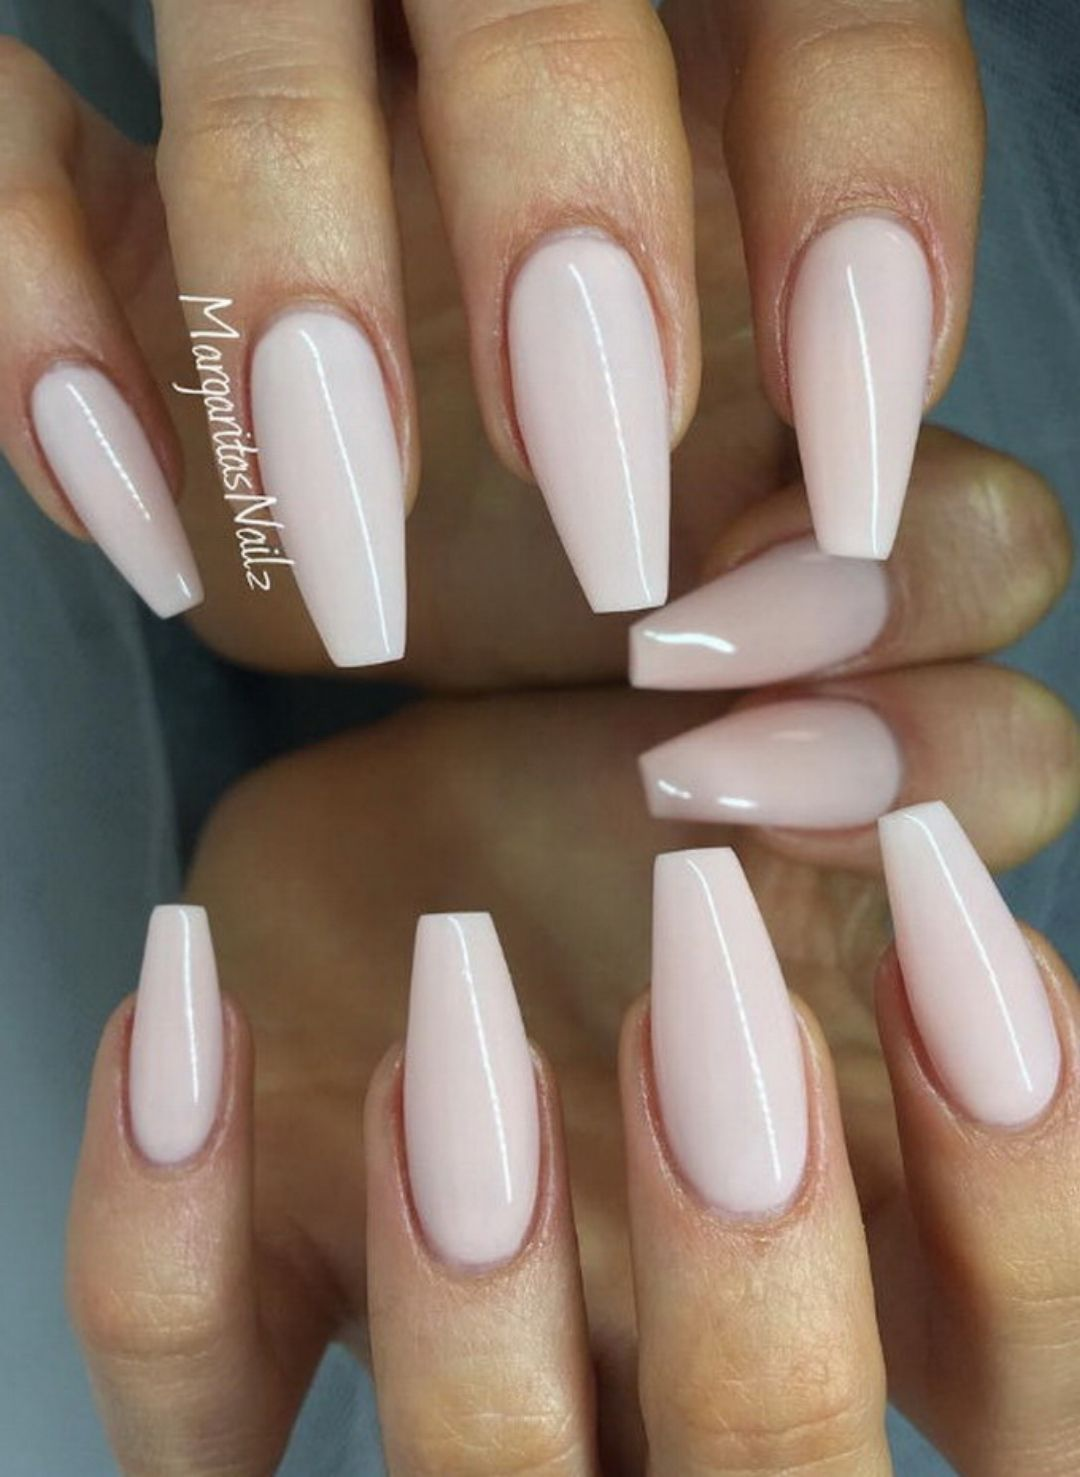 💅🏻 33 Trend-Setting Nail Art Designs by @margaritasnailz | Makeup ...